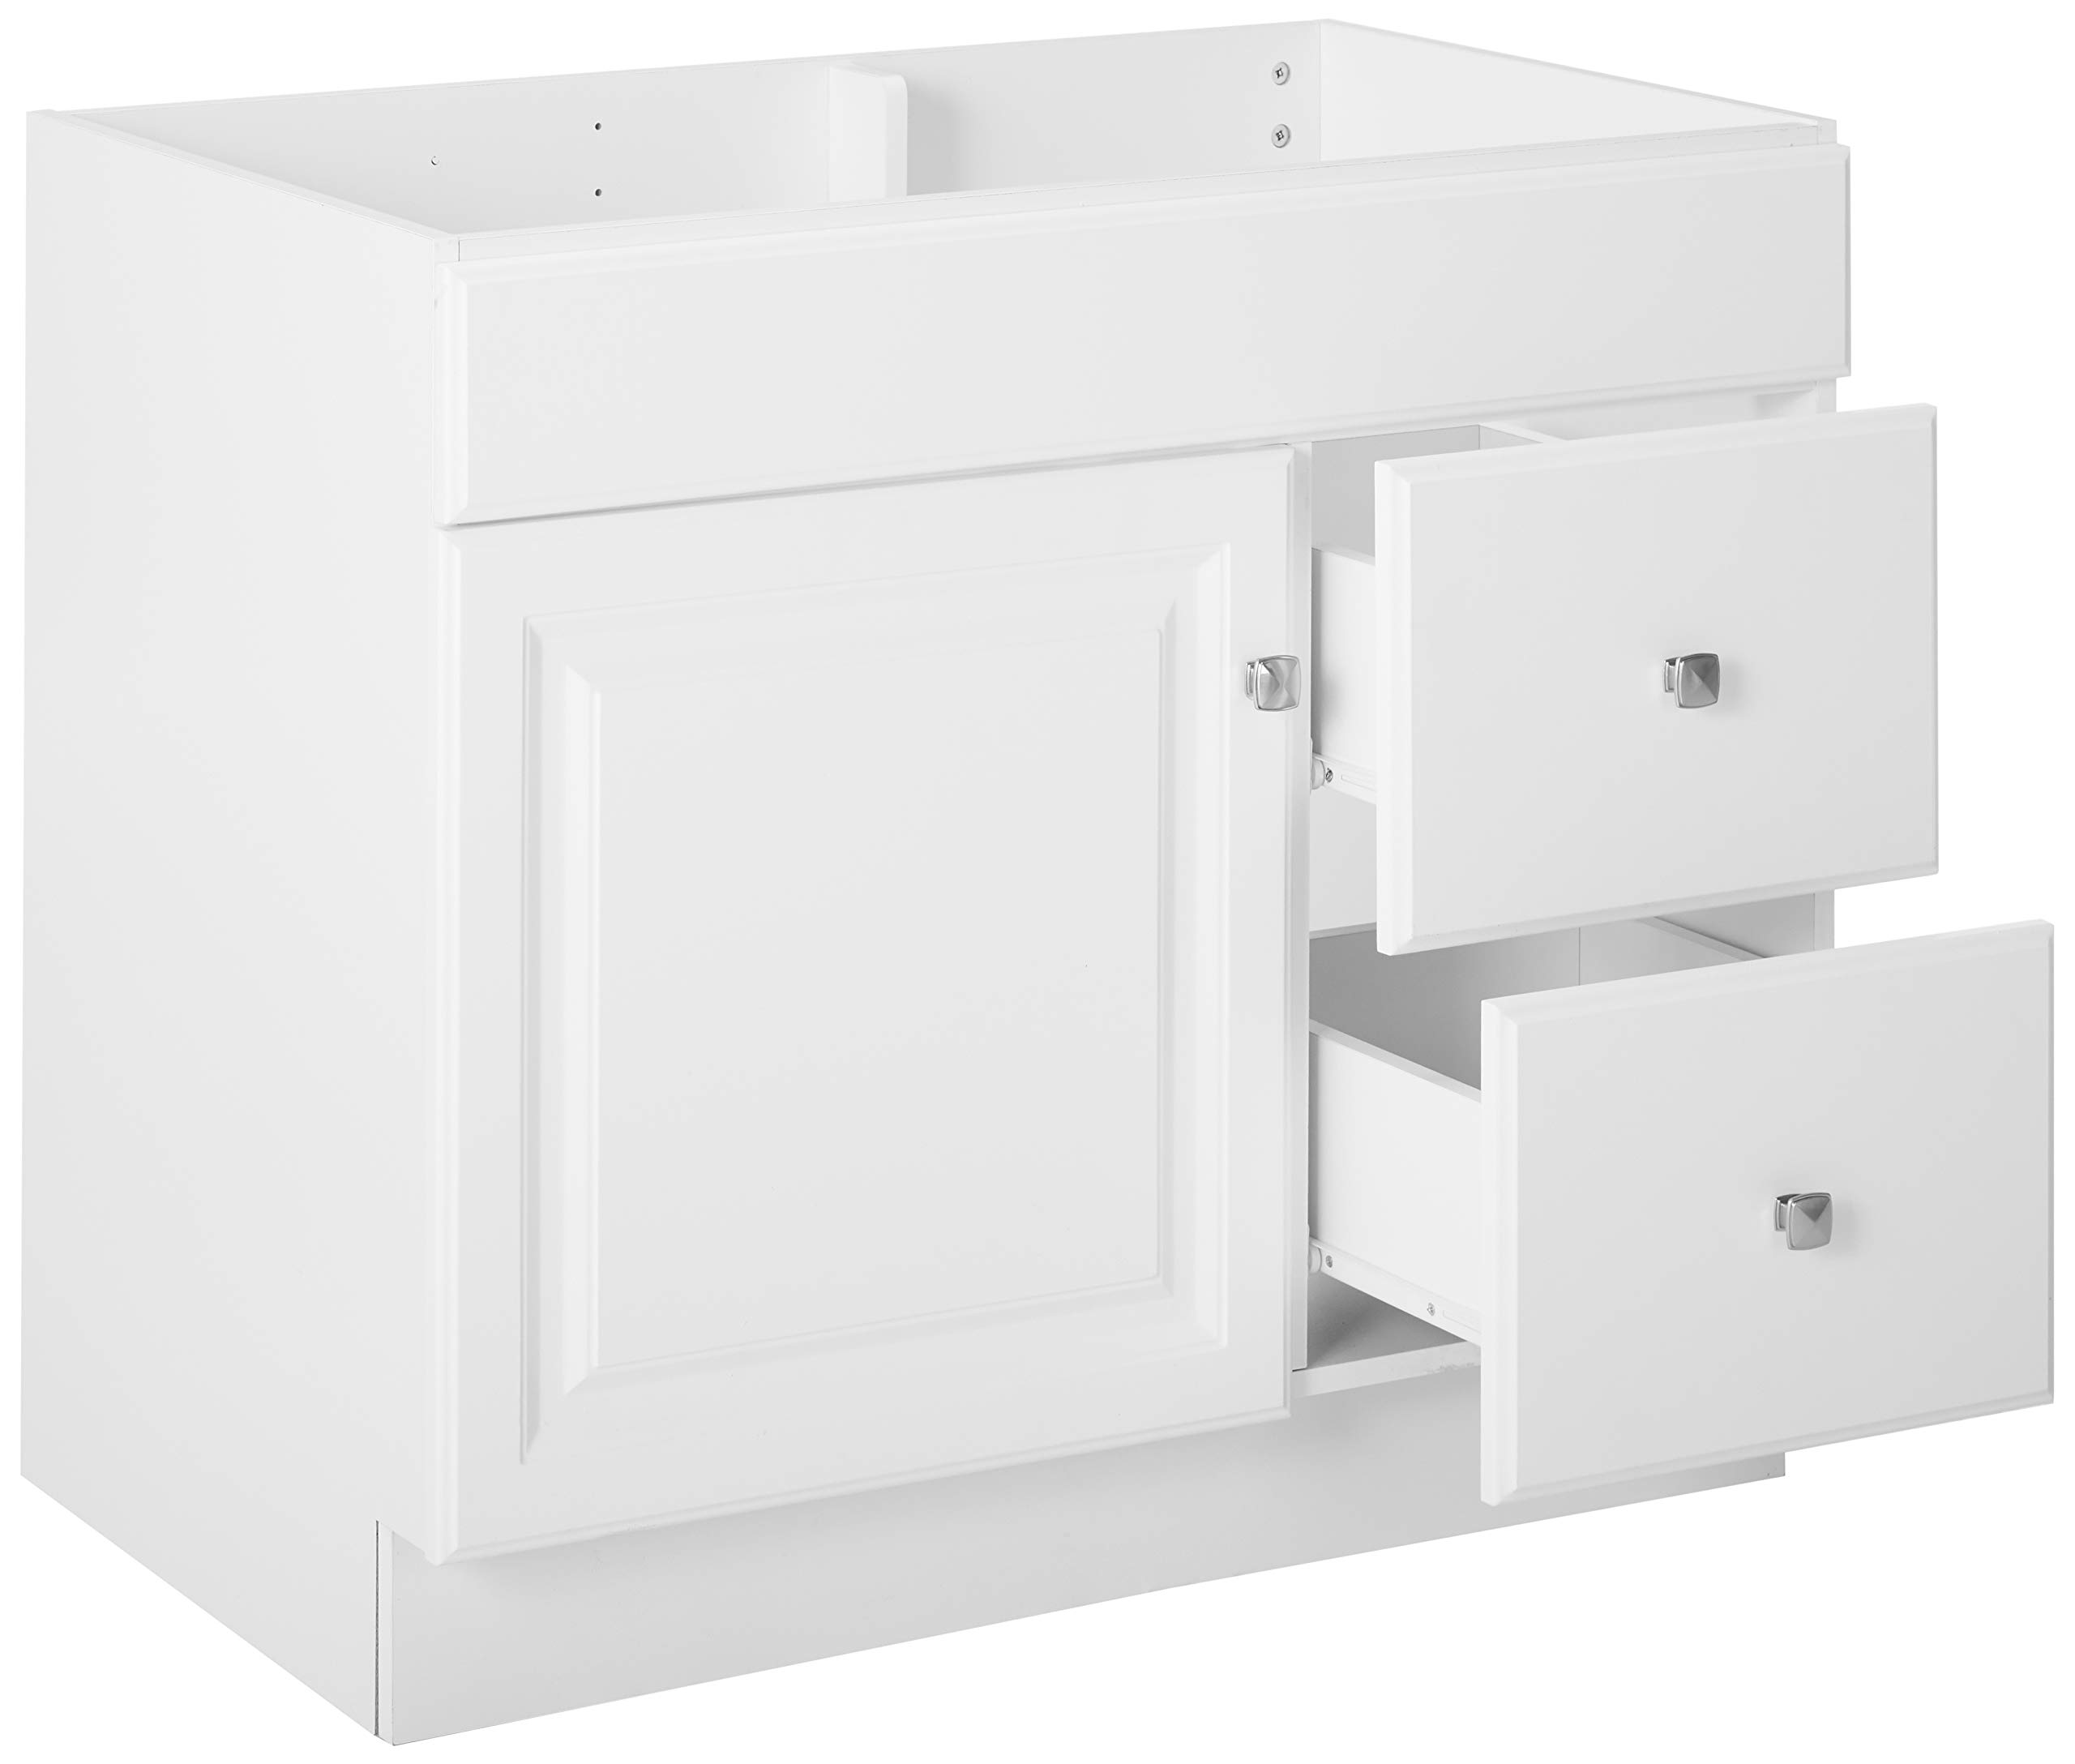 """Design House 531954 Wyndham Ready-To-Assemble 1 Door/2 Drawer Vanity, White, 36""""W x 31.5""""T 21""""D, Cabinet Only - Cabinet only. Top sold separate. 2-drawer construction gives you plenty of storage for toiletries Measures 36-inches wide by 31.5-inches tall by 21-inches deep - bathroom-vanities, bathroom-fixtures-hardware, bathroom - 61KVlheuiIL -"""